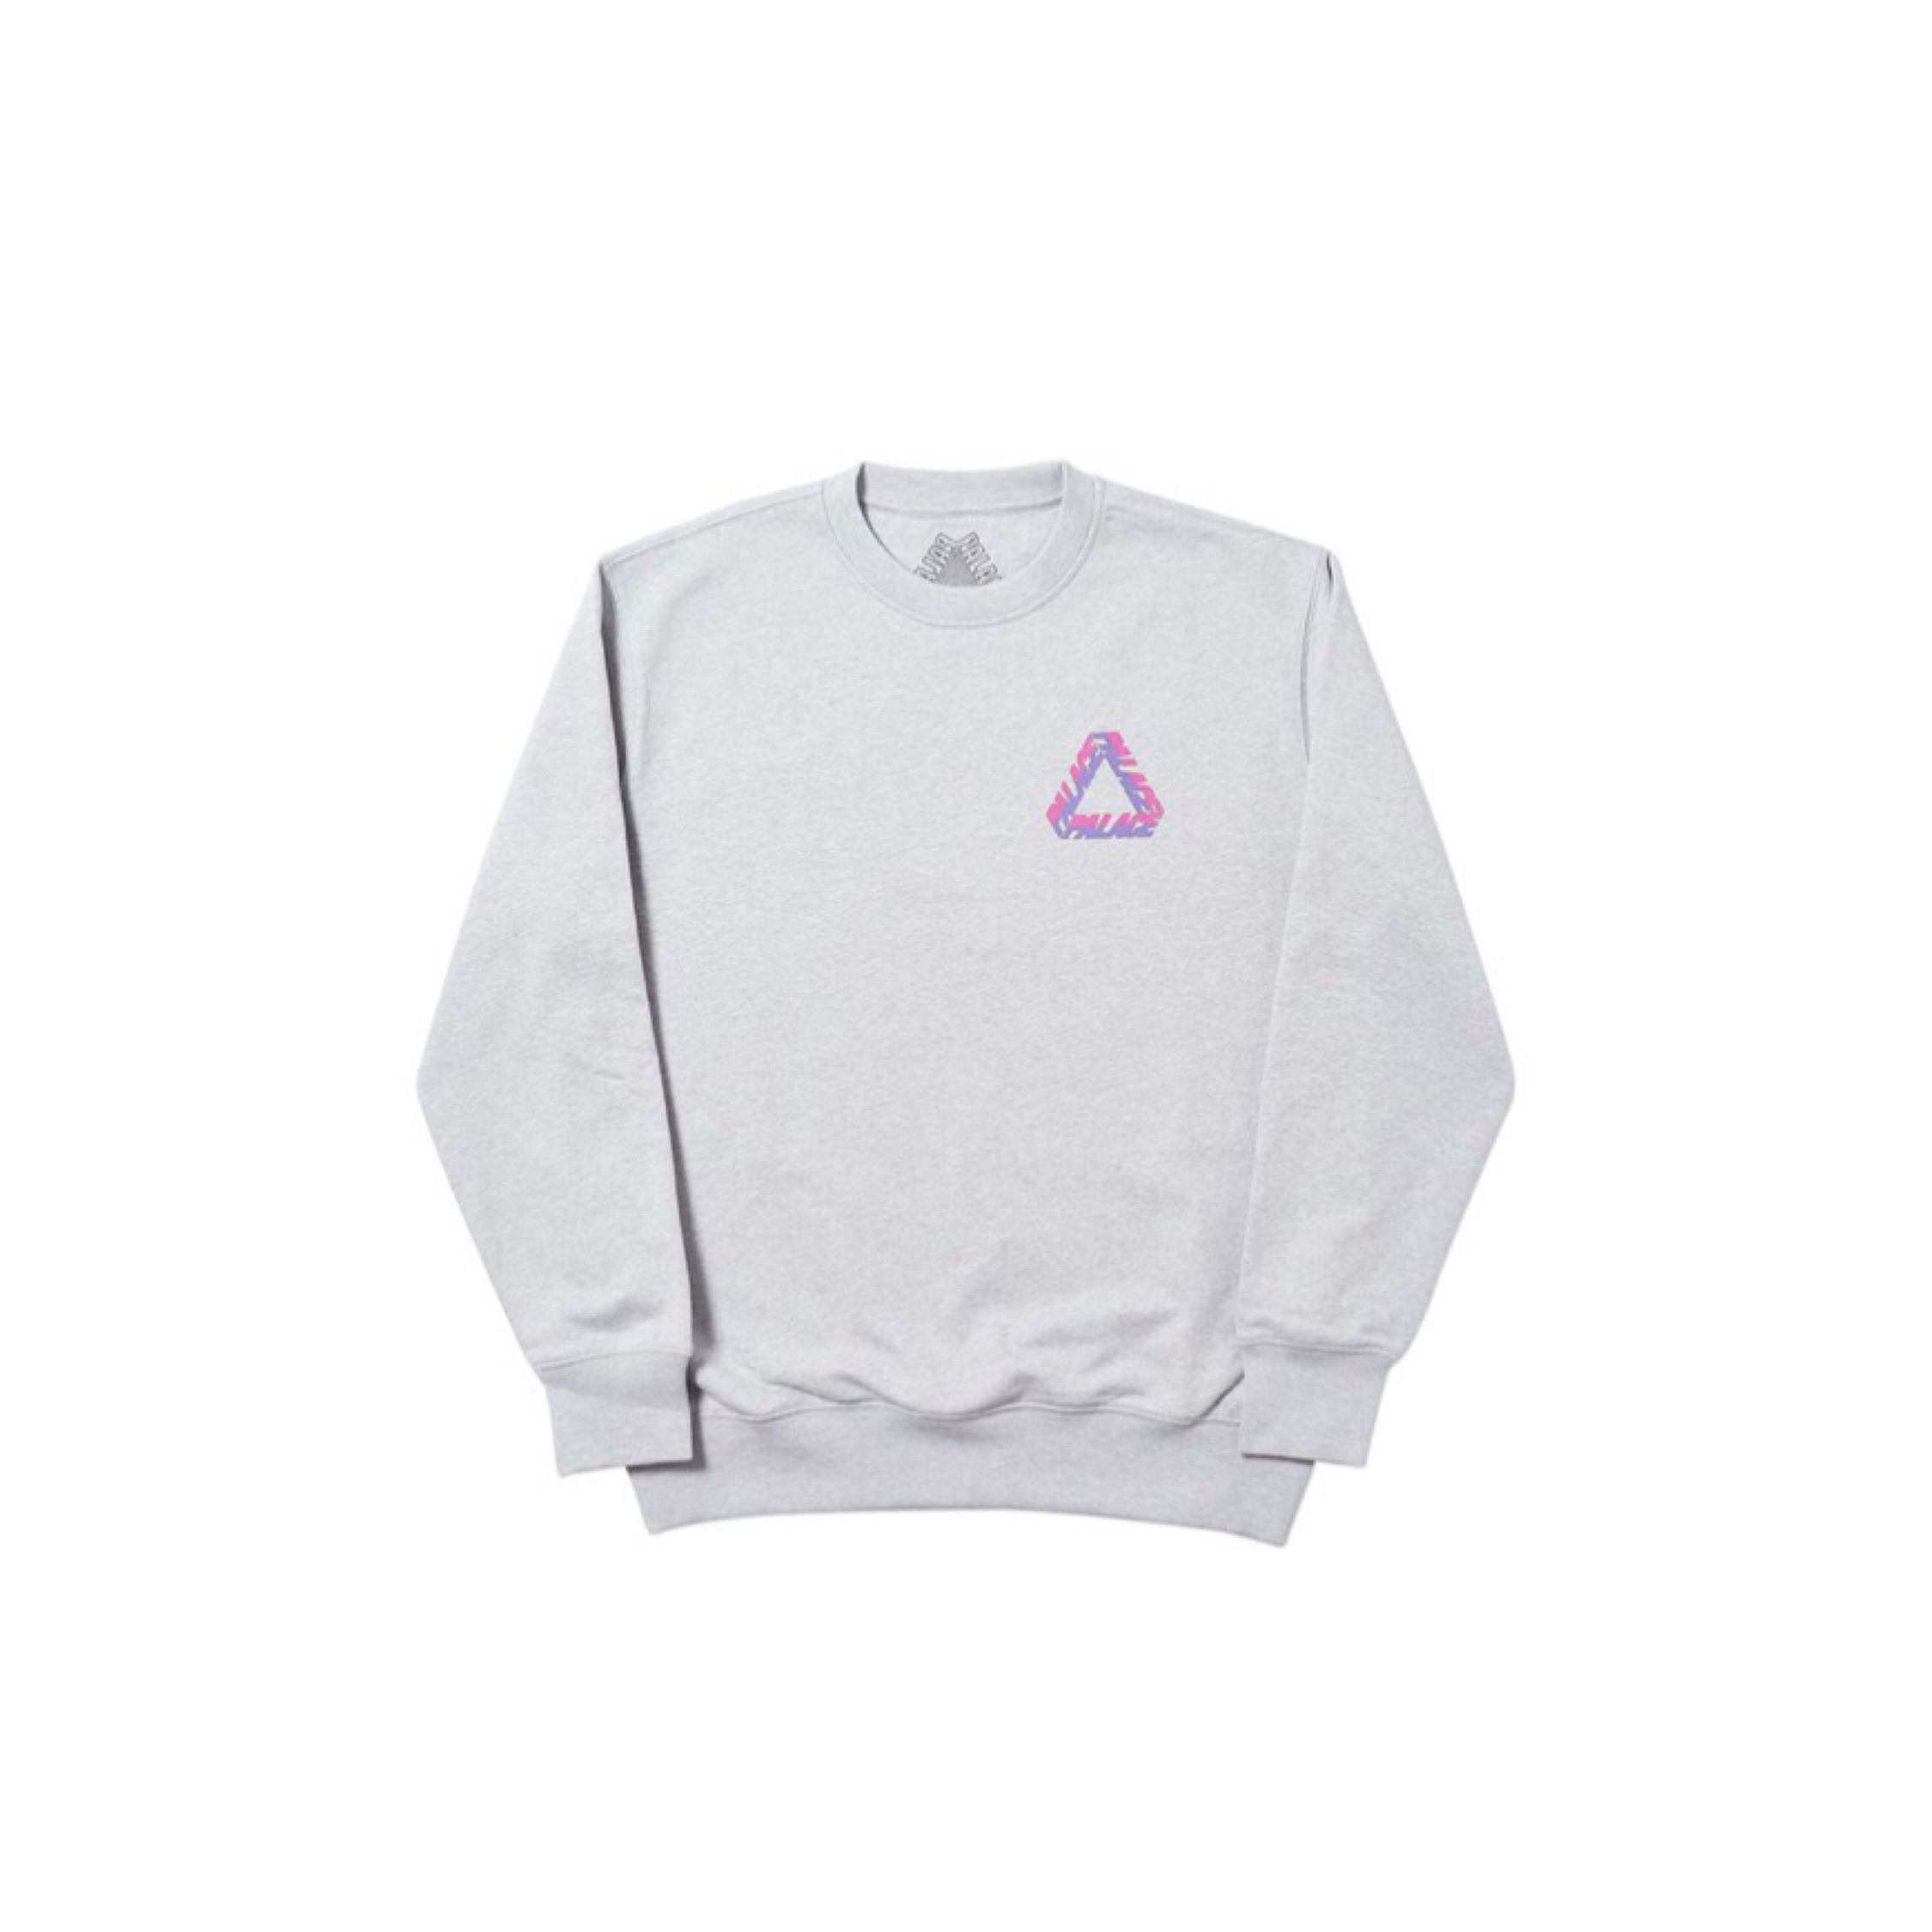 Palace Split P3 Crewneck Sweatshirt